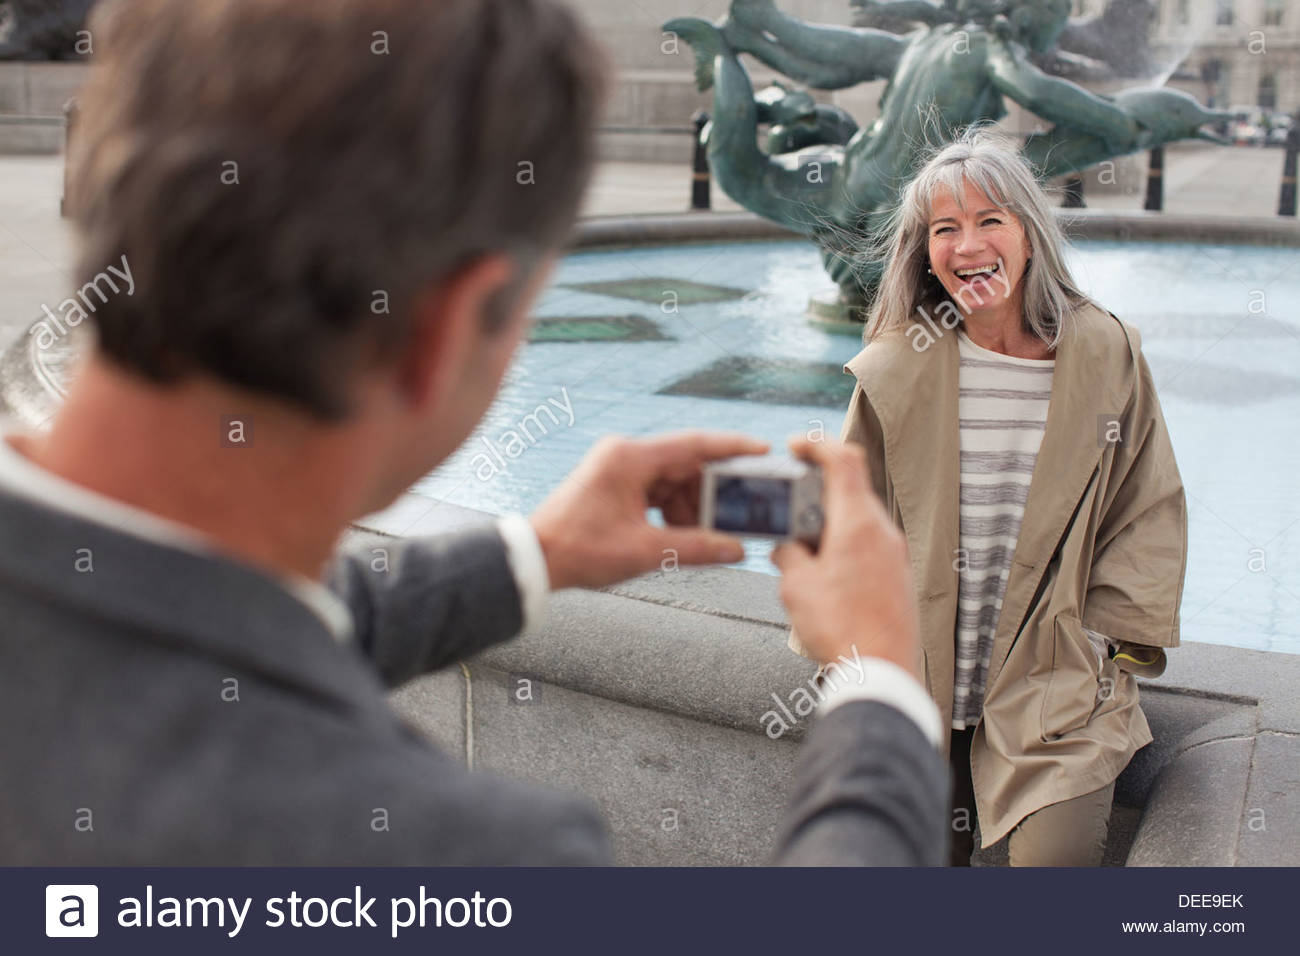 Man with digital camera photographing woman near fountain - Stock Image